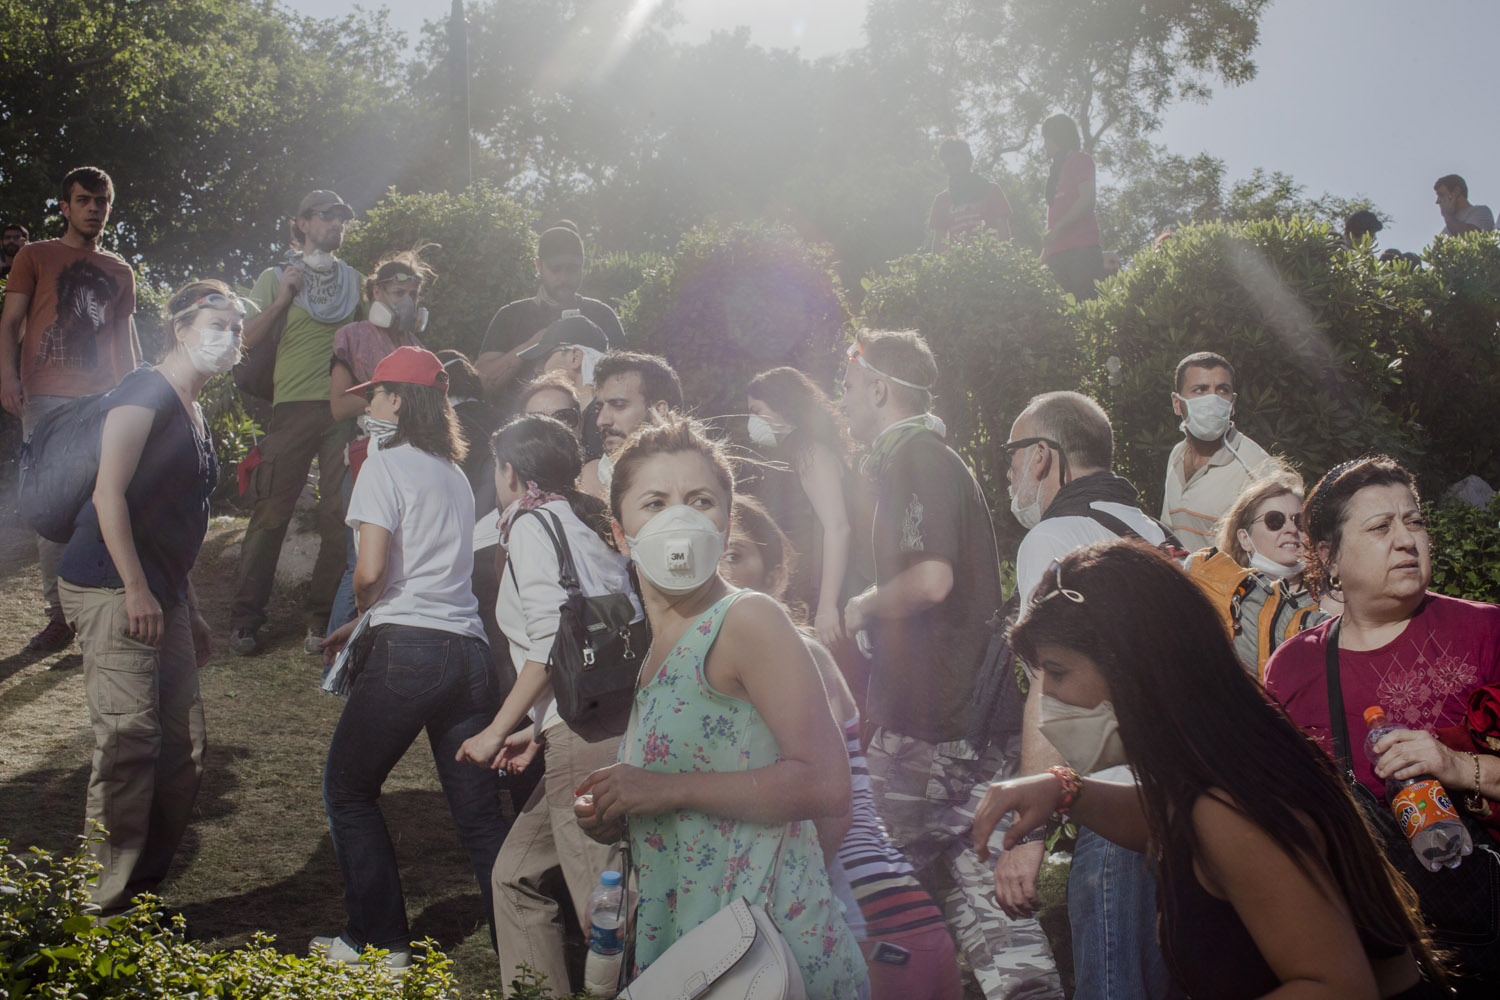 As the police pulled back from the Gezi park area, thousands and thousands of people streamed into the park to join the anti-government protesters.